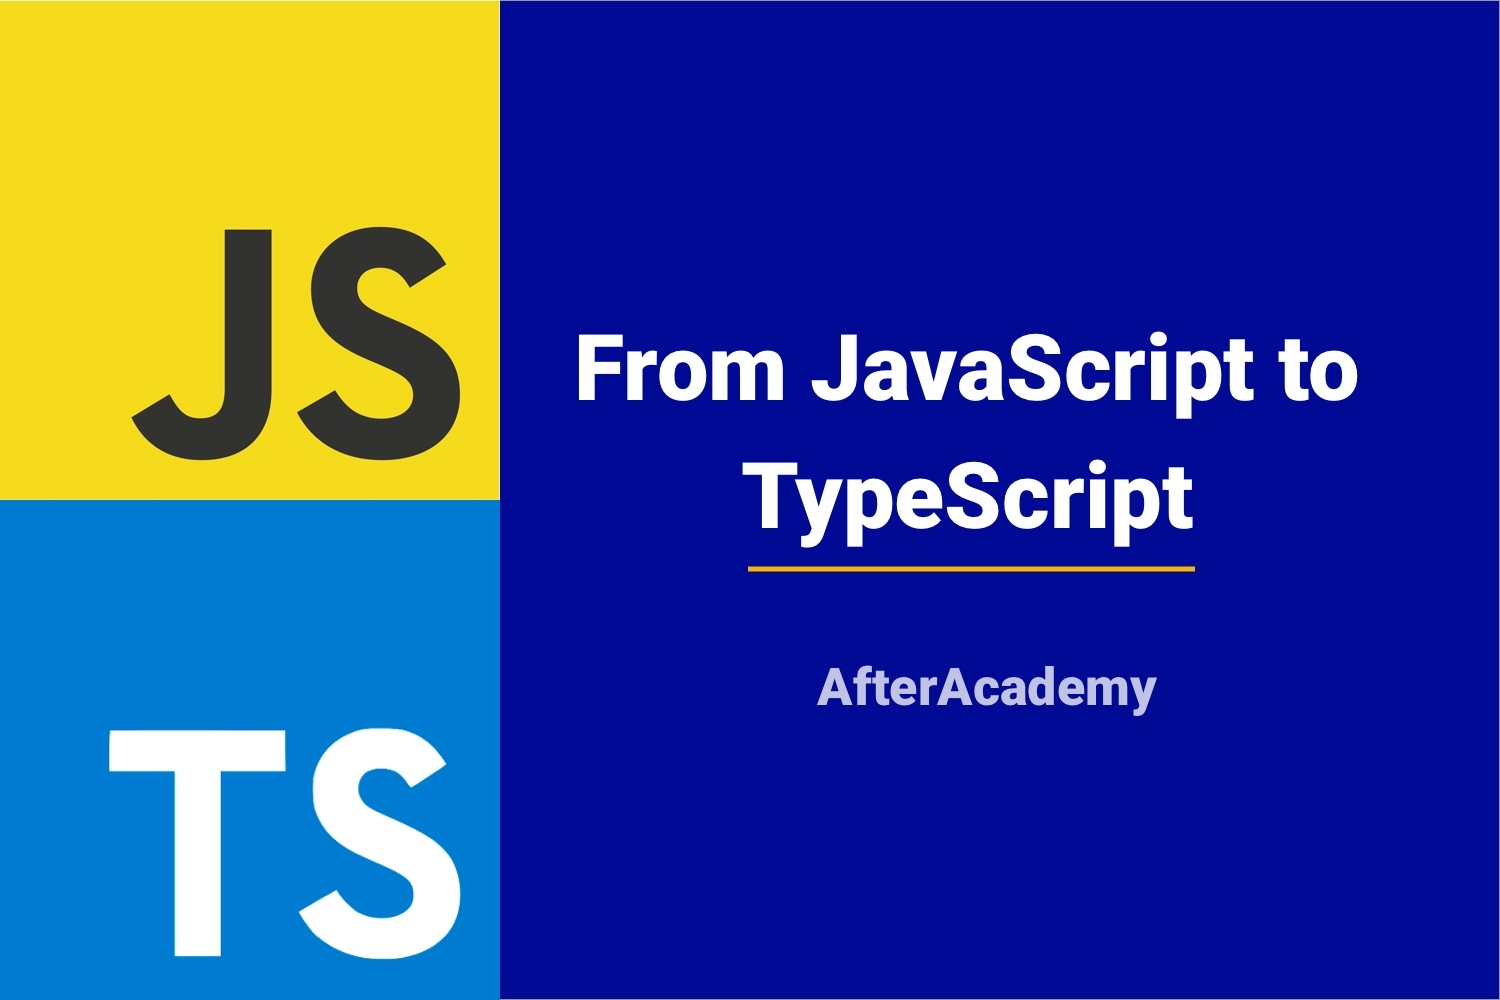 From JavaScript to TypeScript